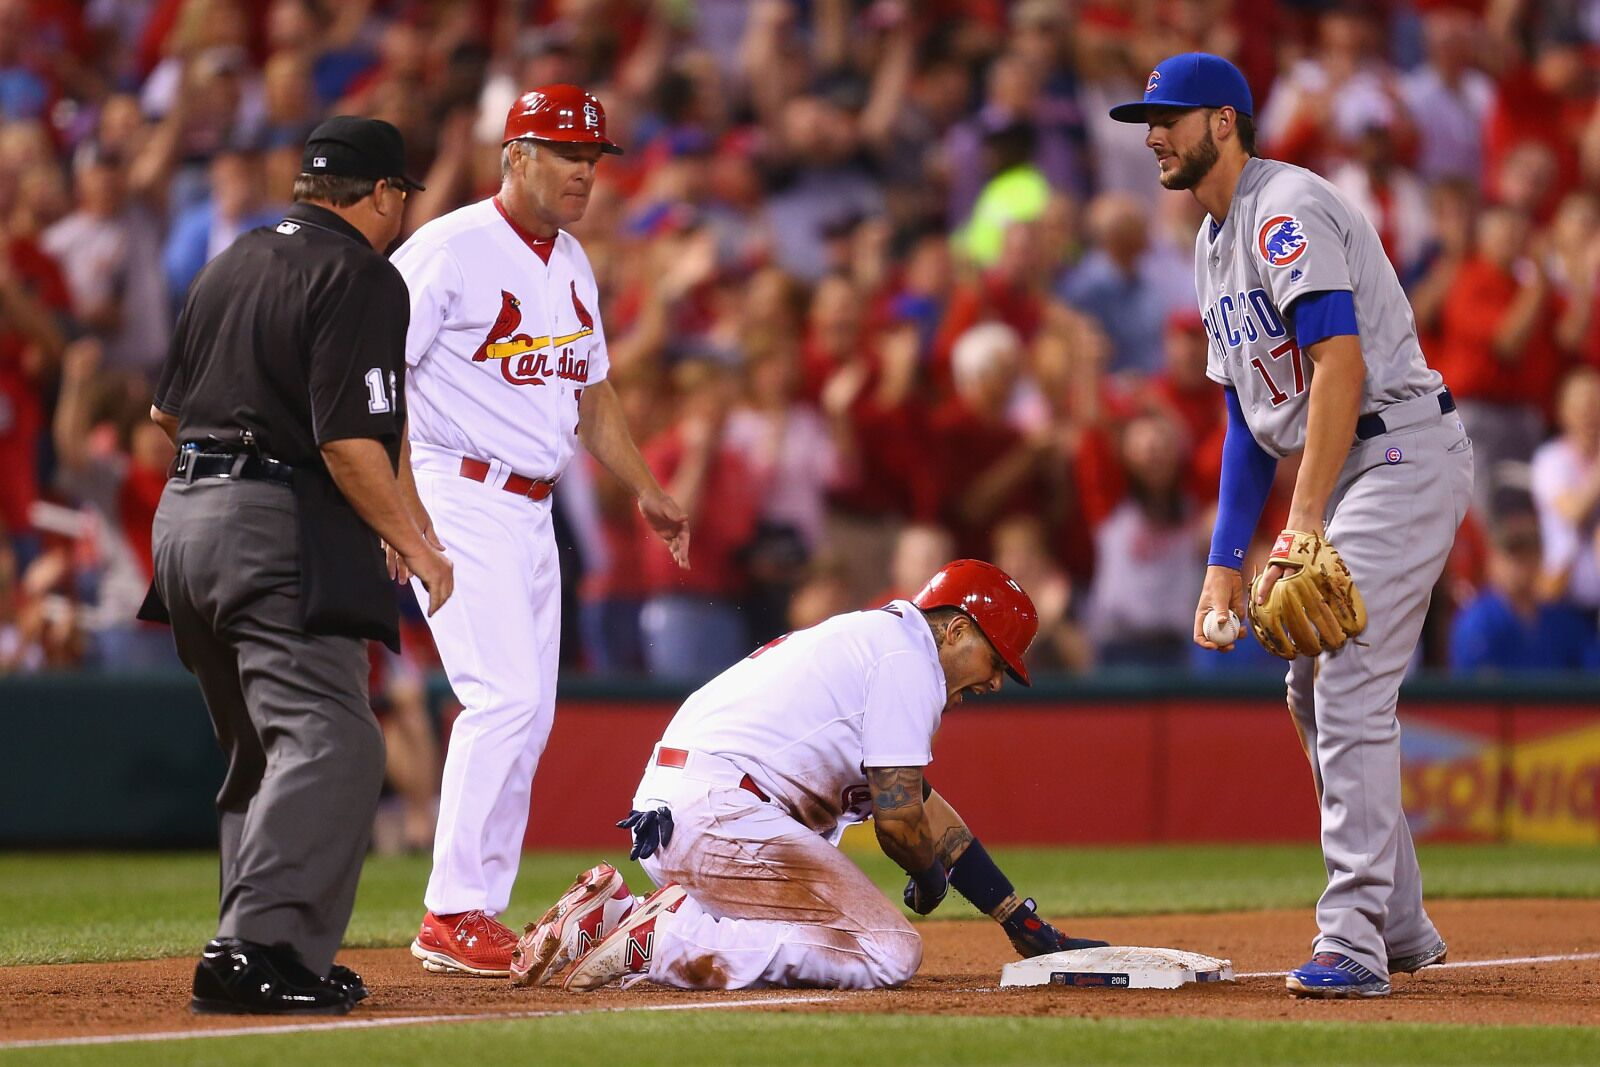 Kris Bryant re-ignites Chicago Cubs, St. Louis Cardinals rivalry